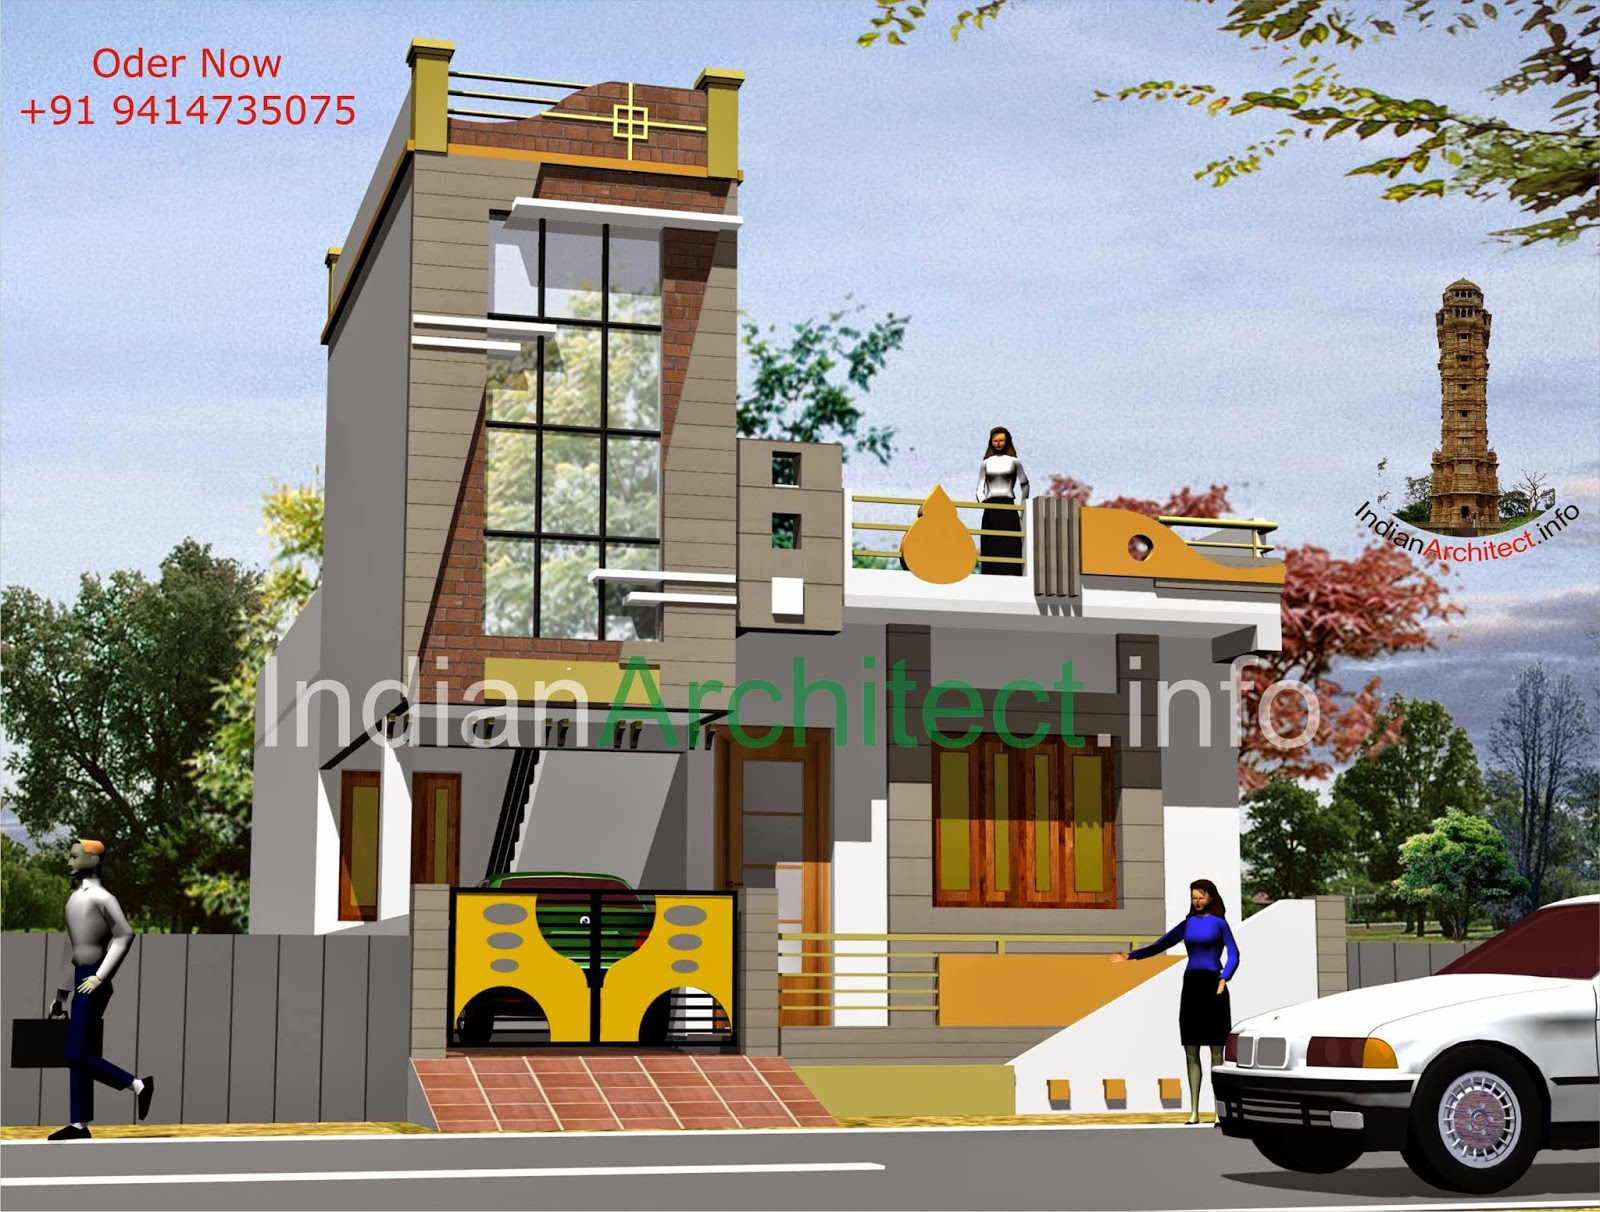 Mr changeriya ji house plan exterior design at neemuch for House front gallery design